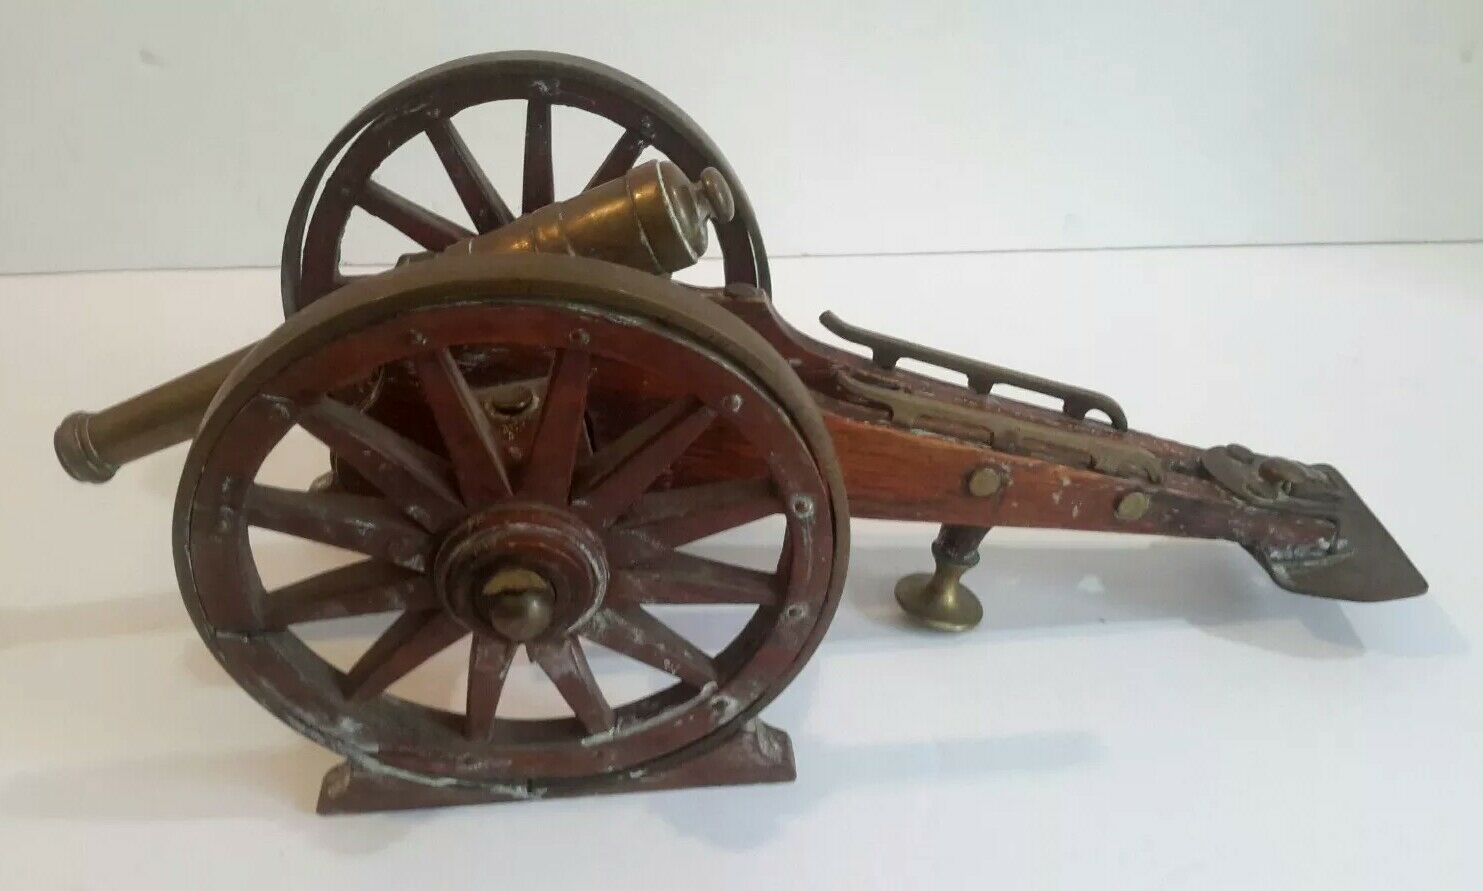 Antique Brass & Wooden Large Toy Cannon 13  long 6  wide 19th Century